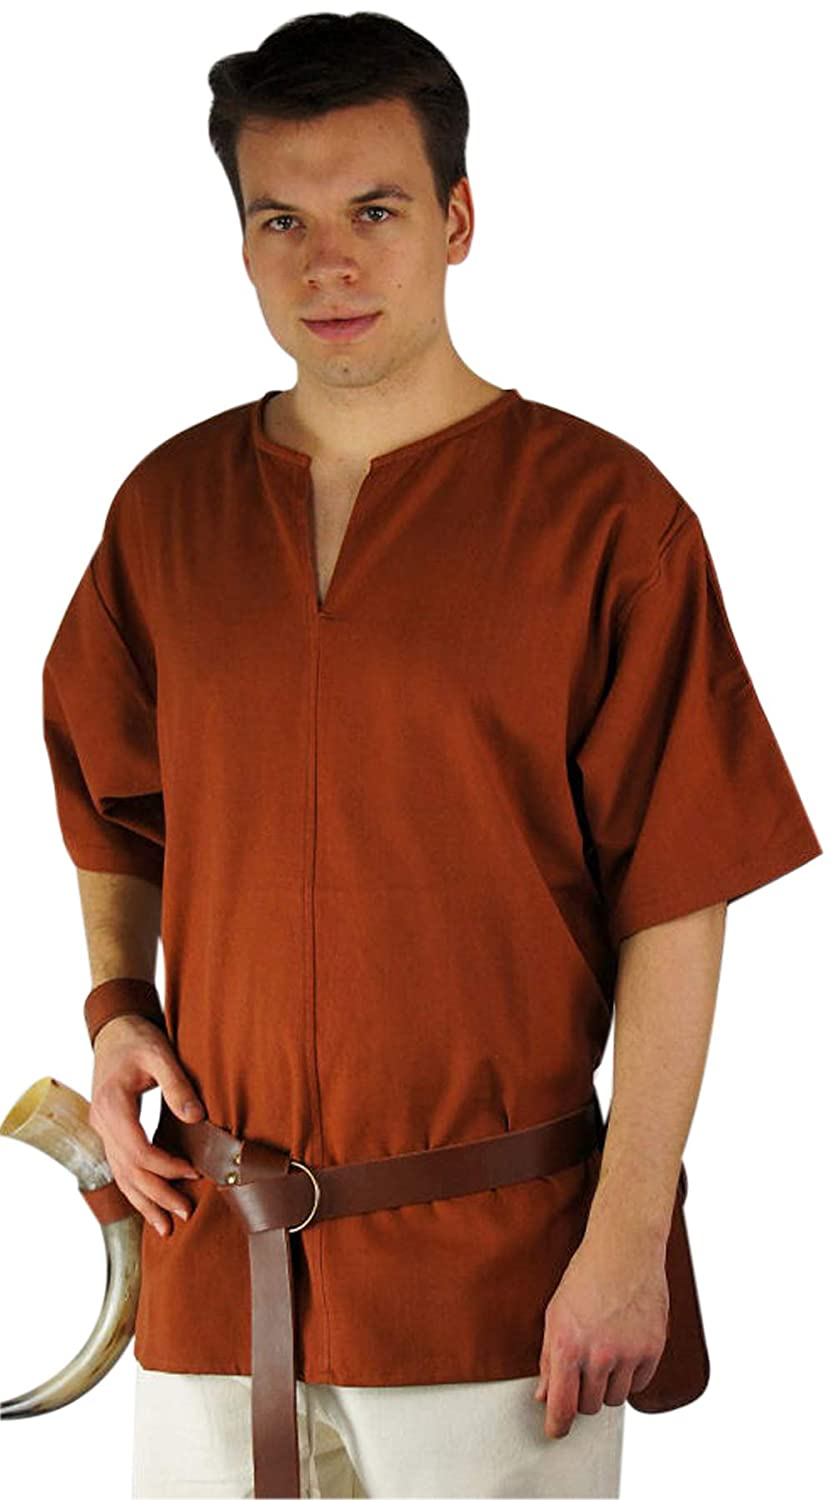 Medieval-LARP-SCA-Re enactment-ROMAN-VIKING Tunic-Shirt WITH SLEEVES ALL SIZES